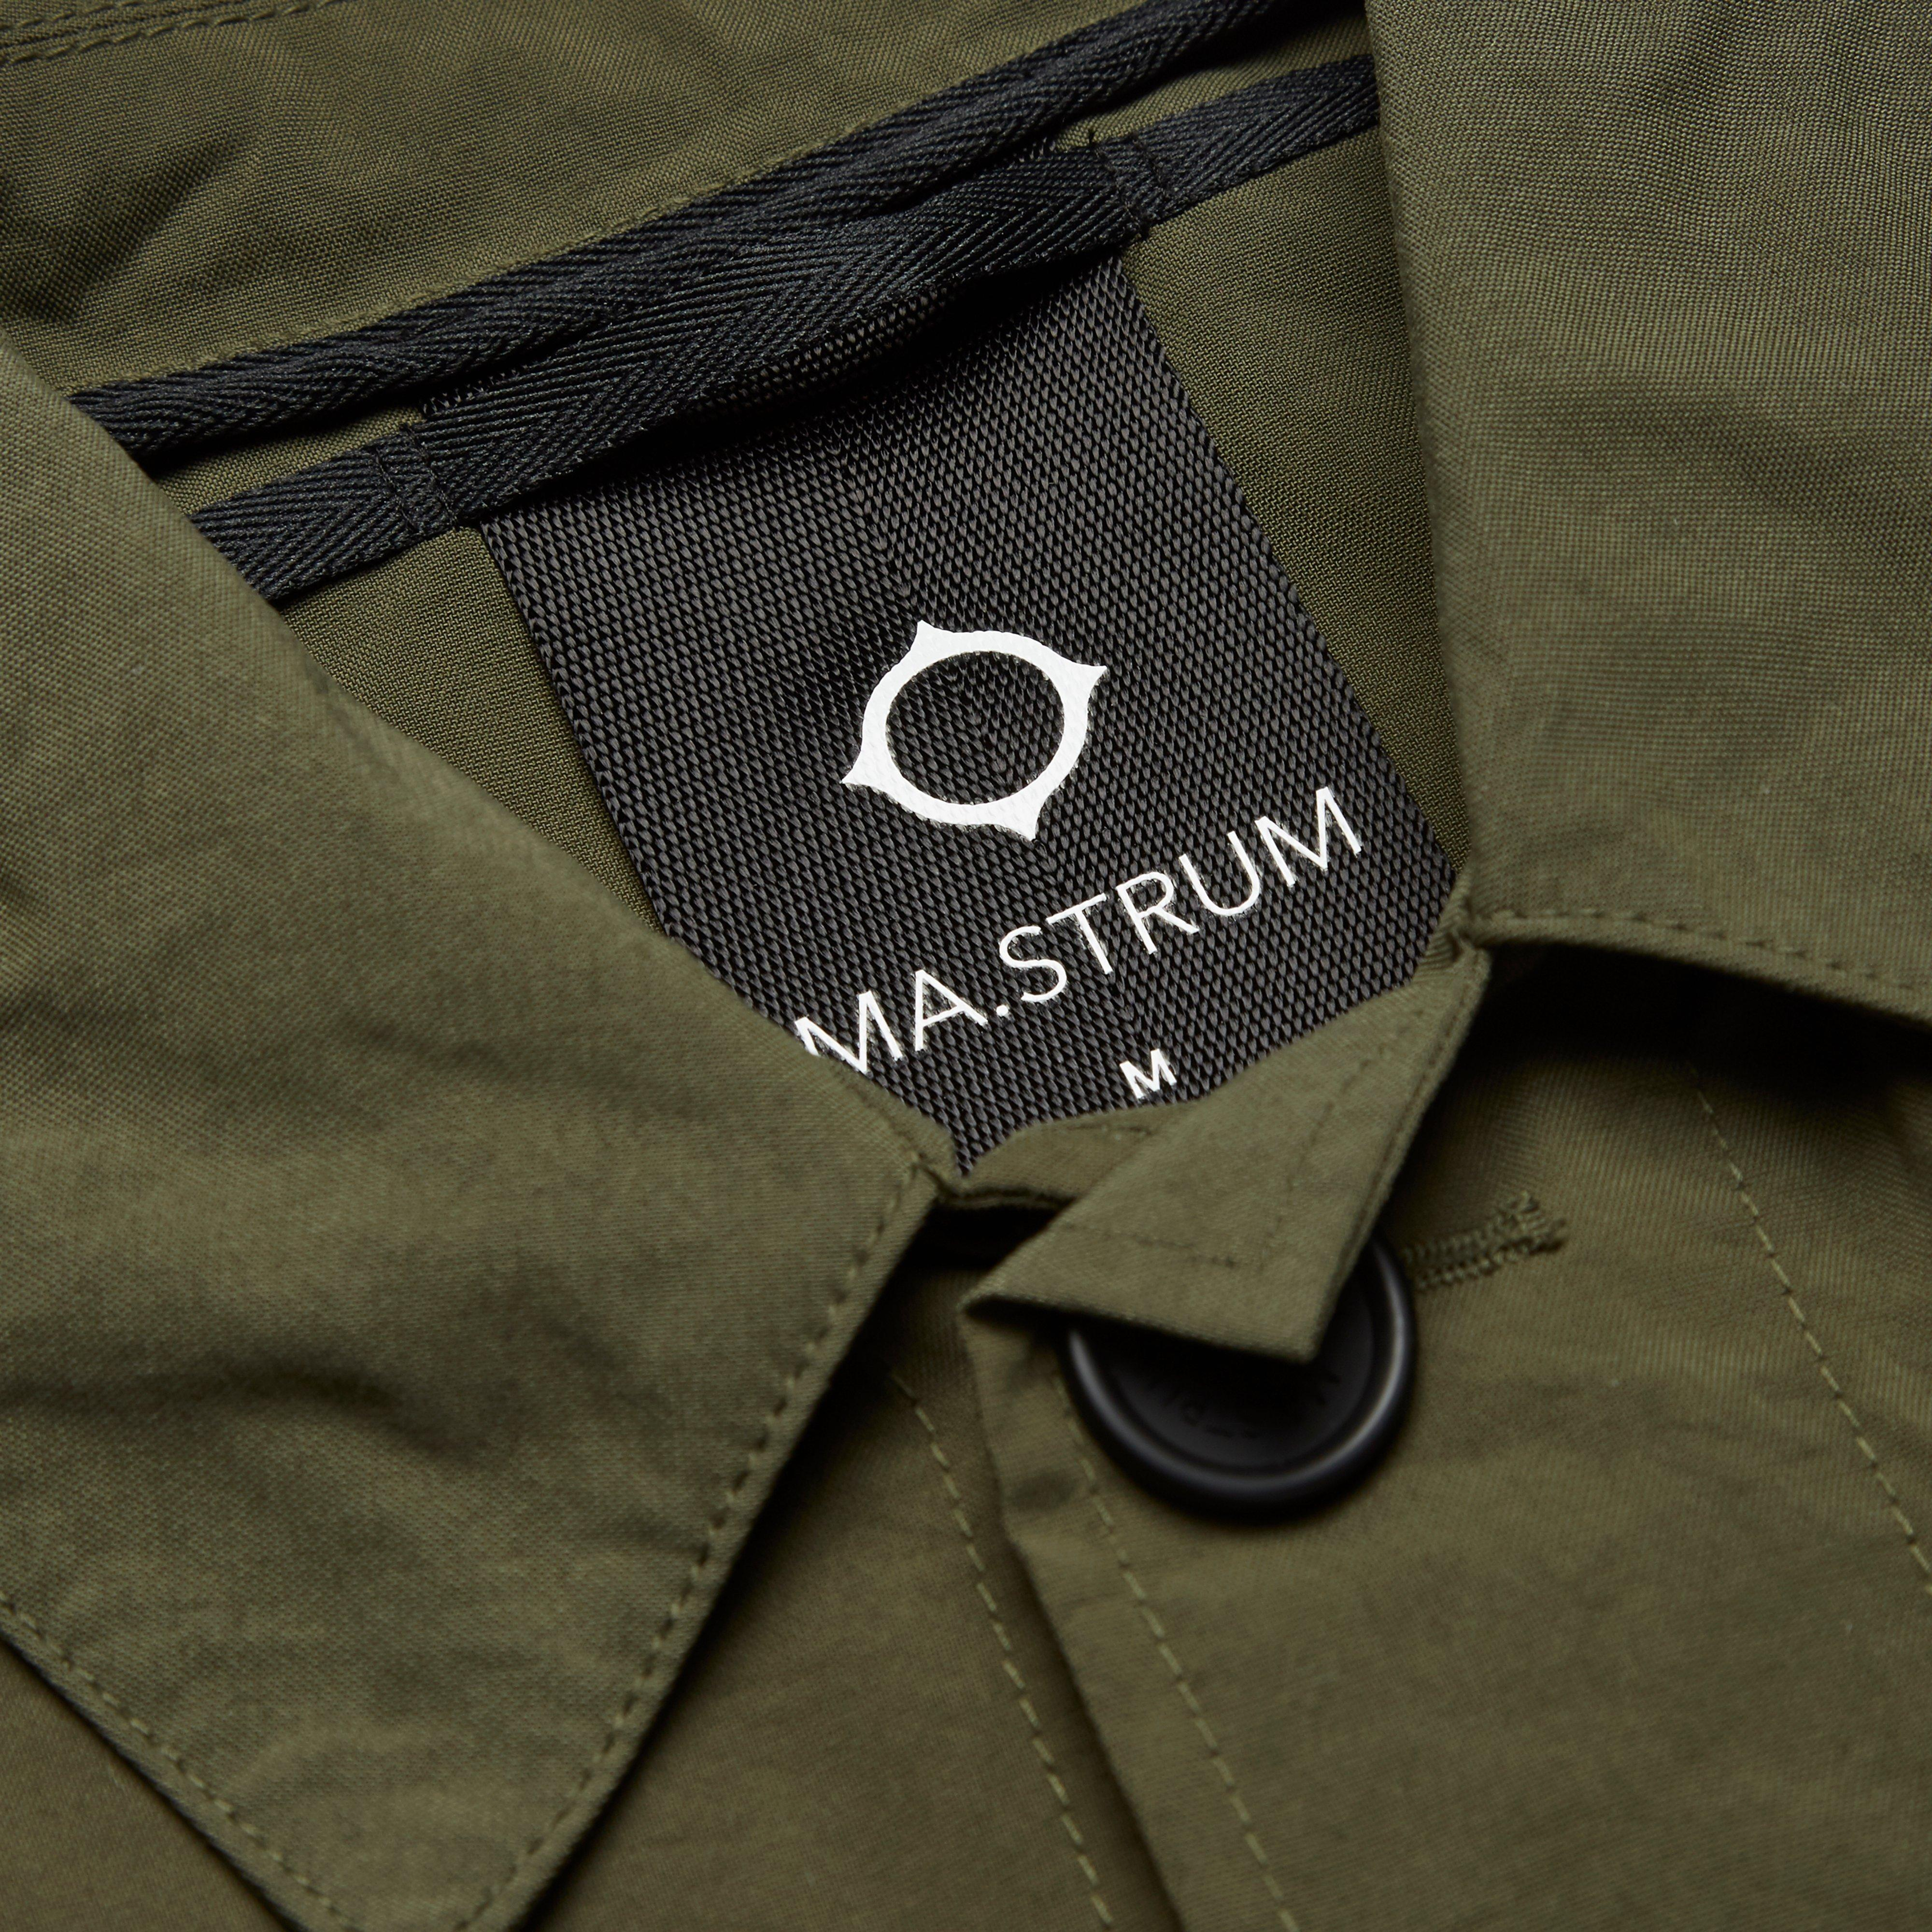 Ma.strum Synthetic Charioteen Bomber Jacket in Olive (Green) for Men